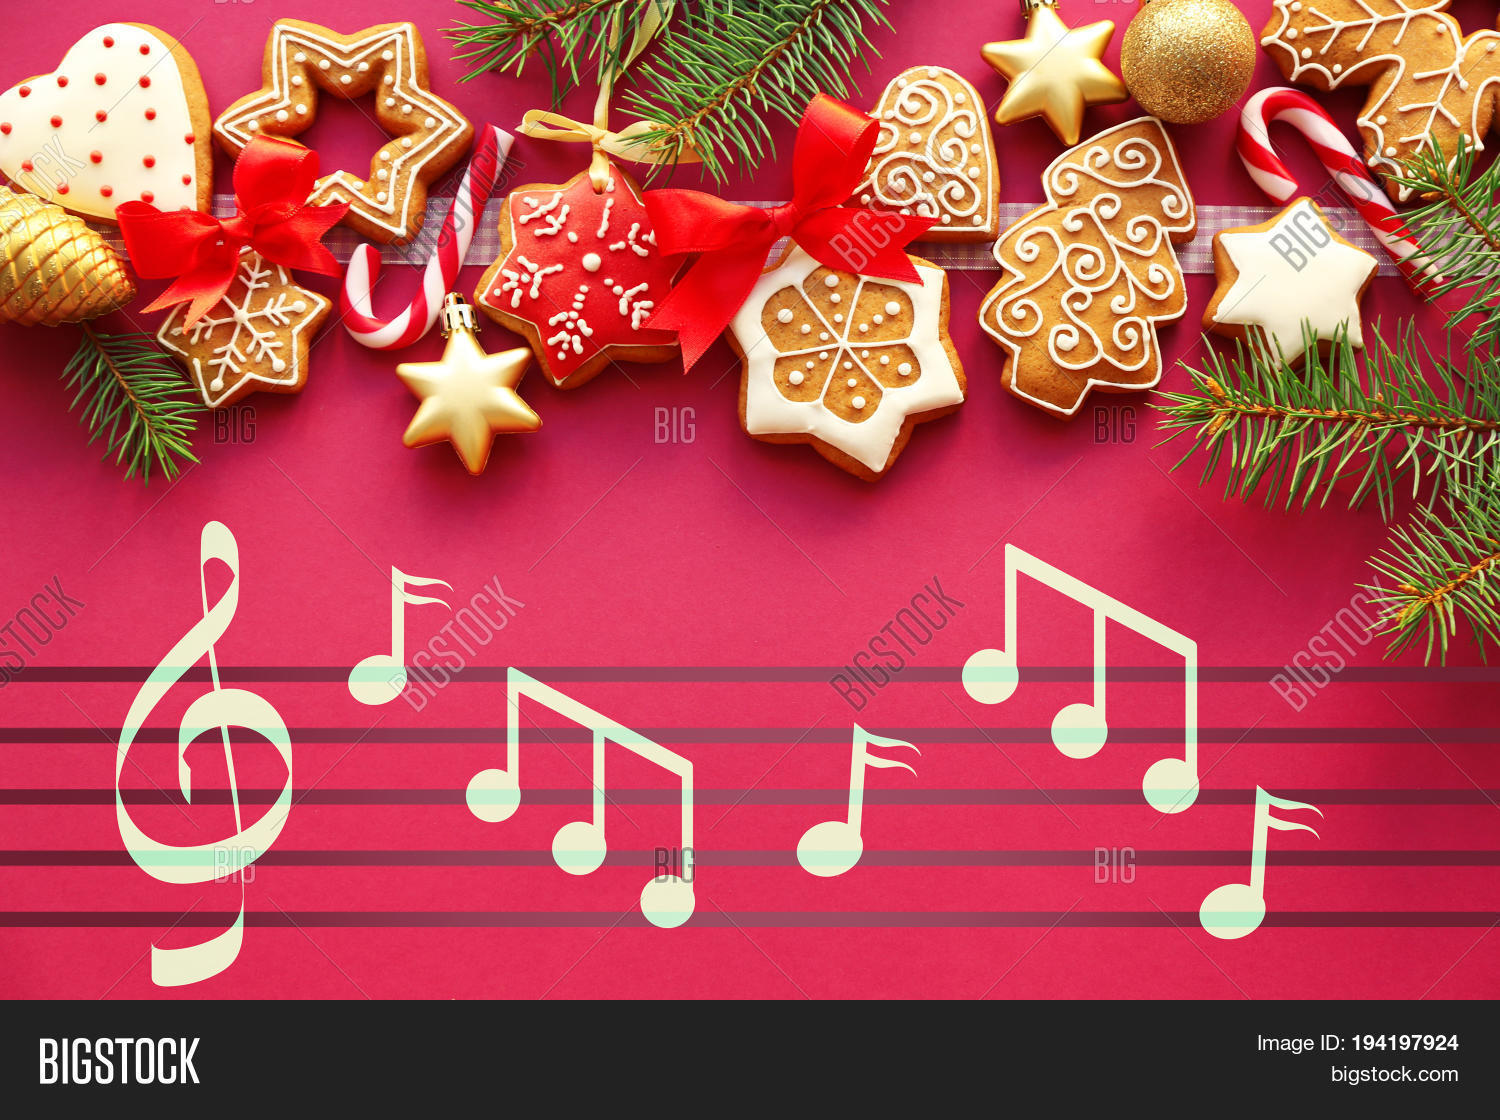 Christmas Music Background.Tasty Gingerbread Image Photo Free Trial Bigstock